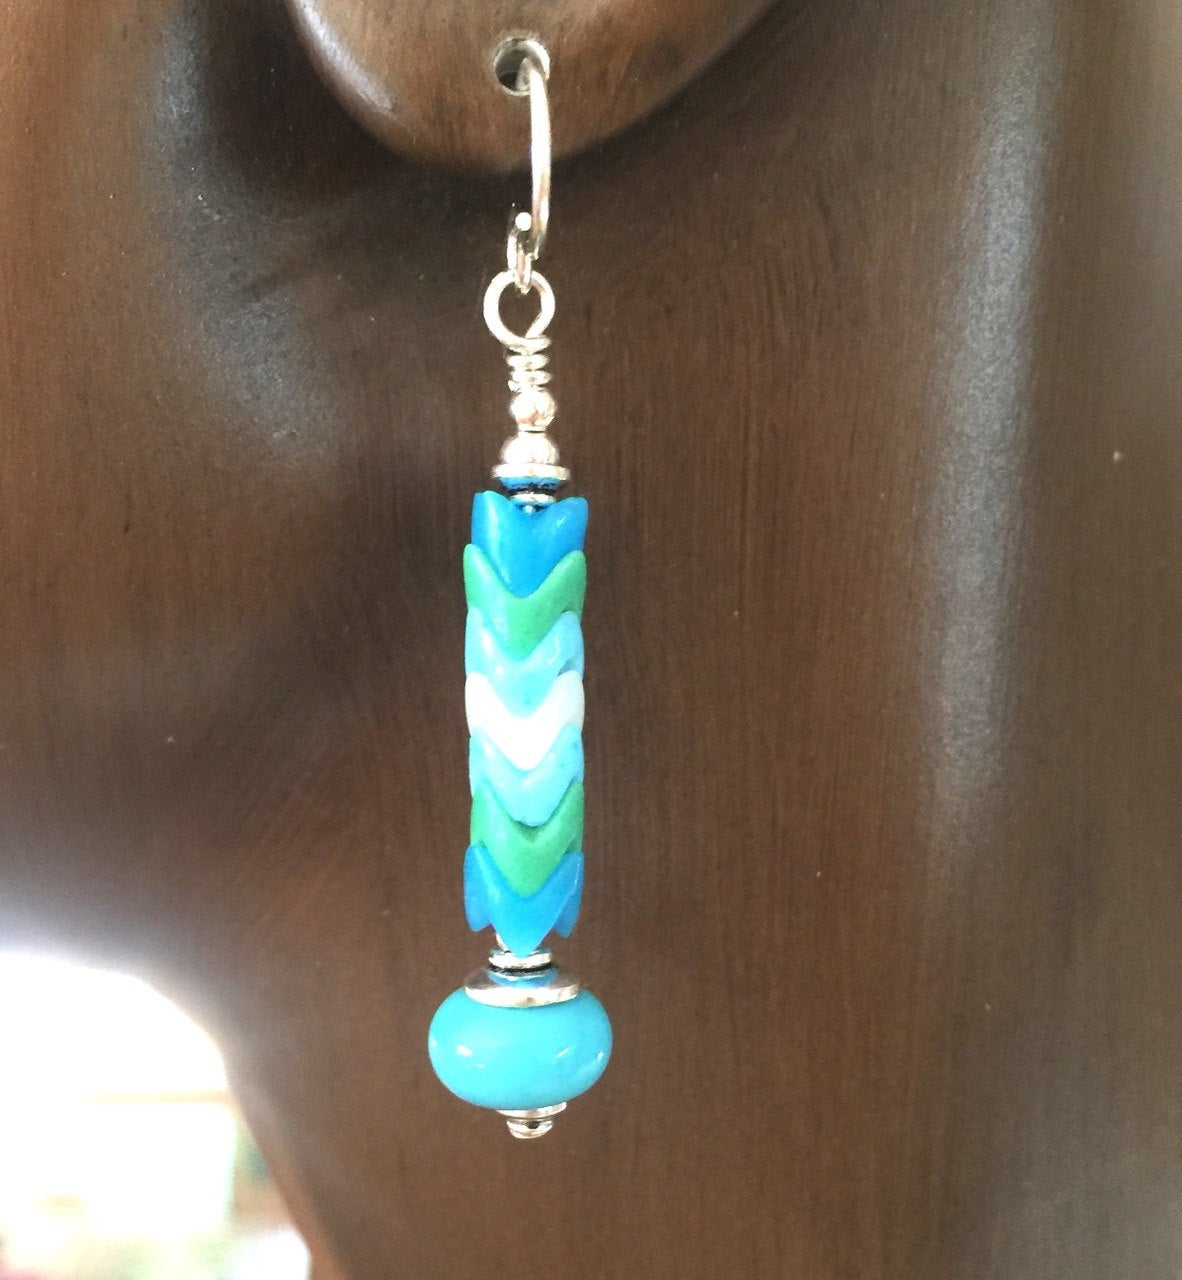 6mm Turquoise and White Snake Glass Bead | Earrings